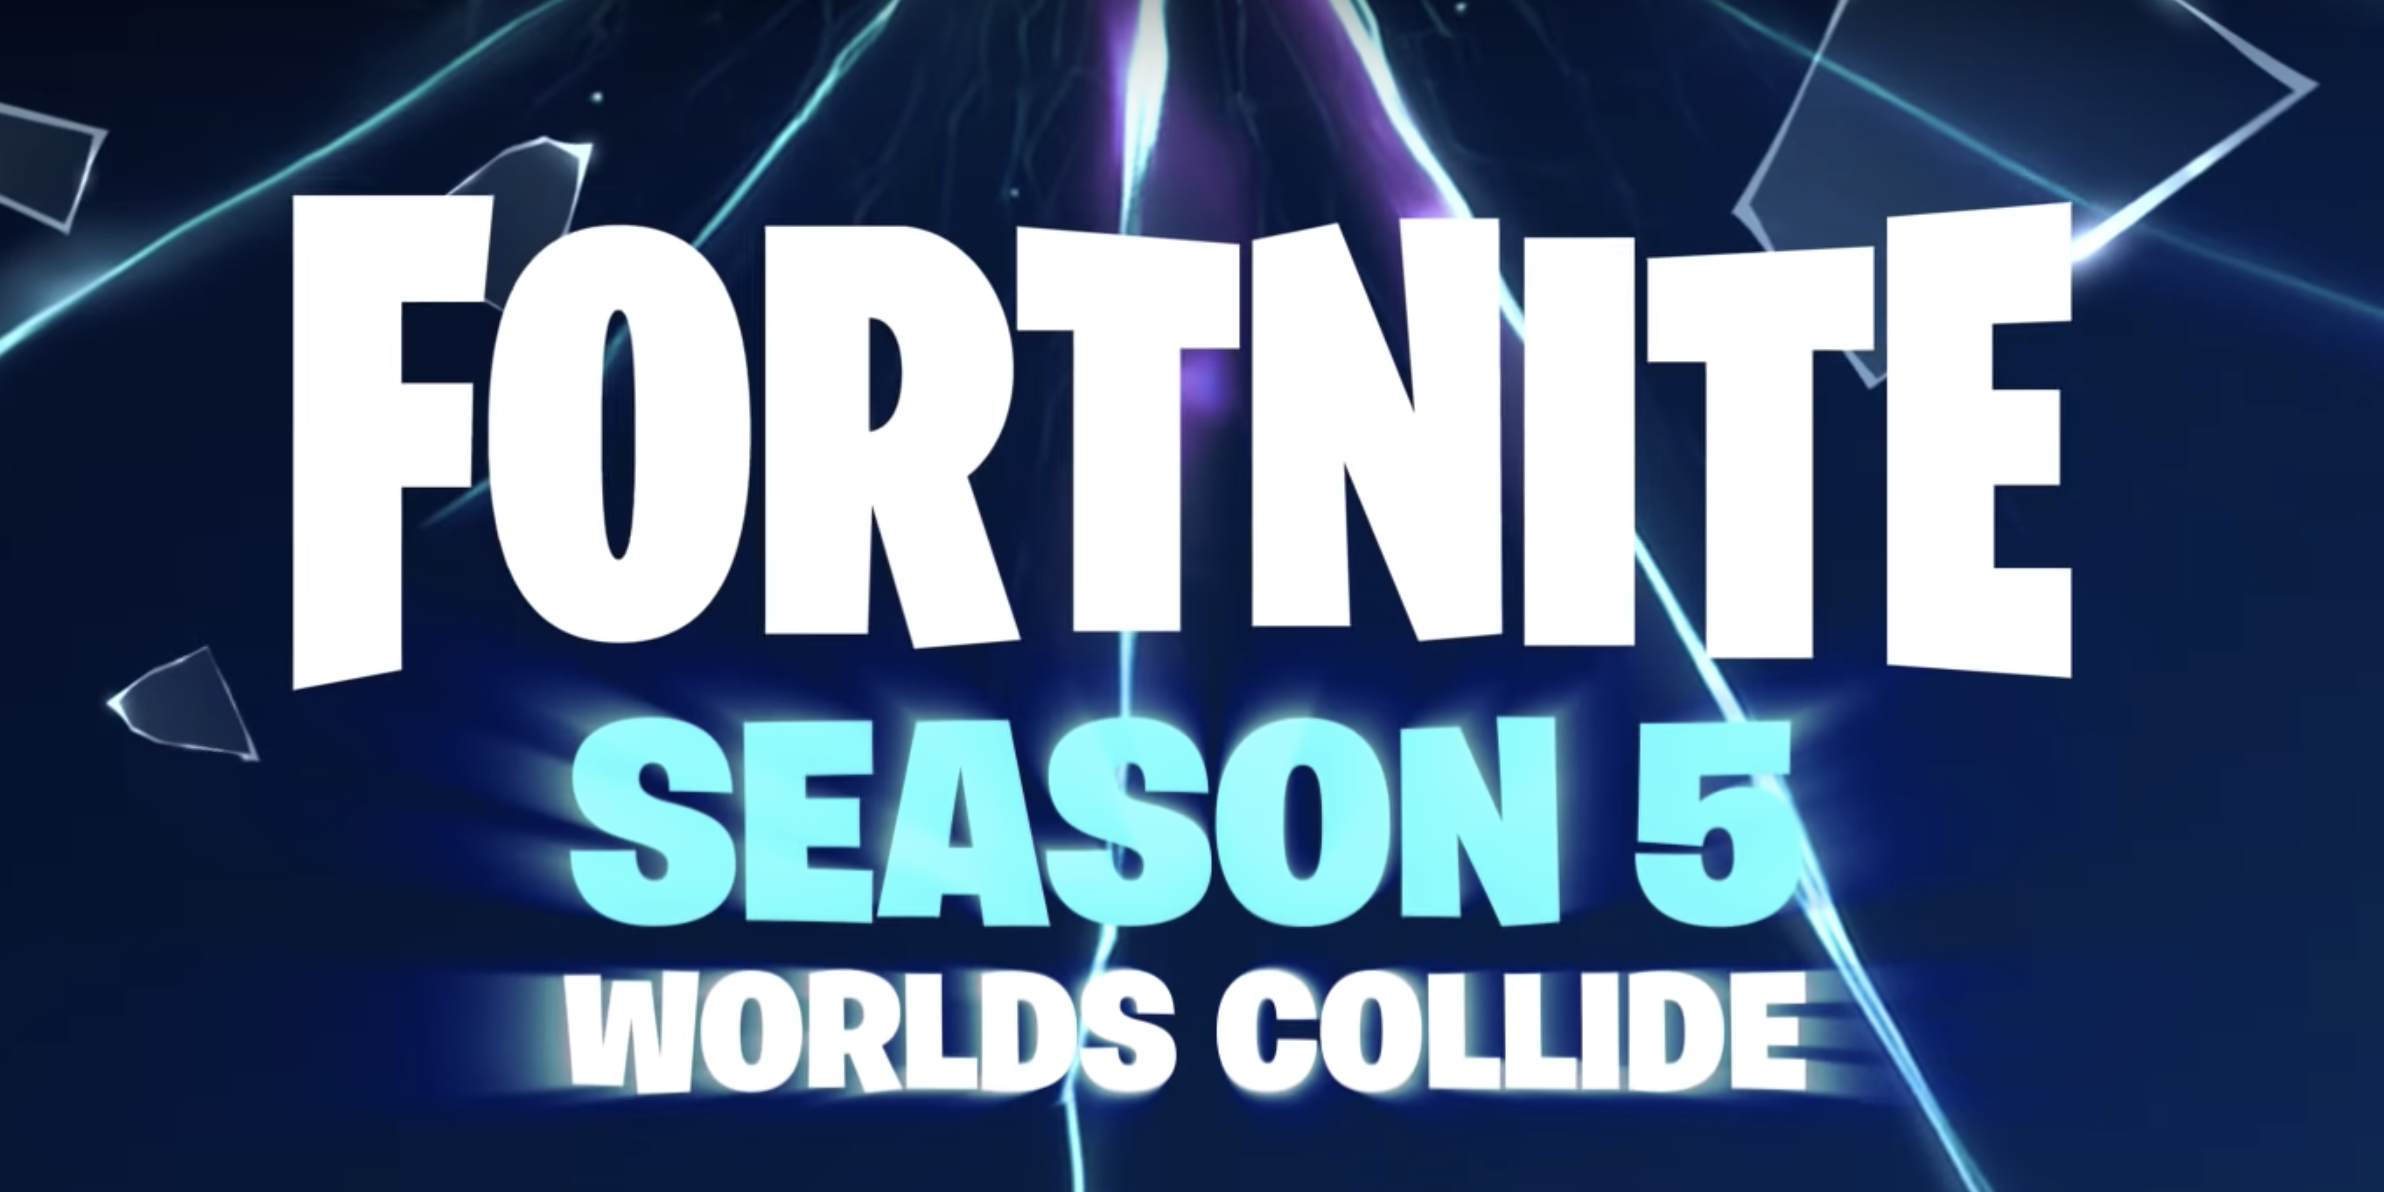 Fortnite Season 5: What to know about the Worlds Collide.